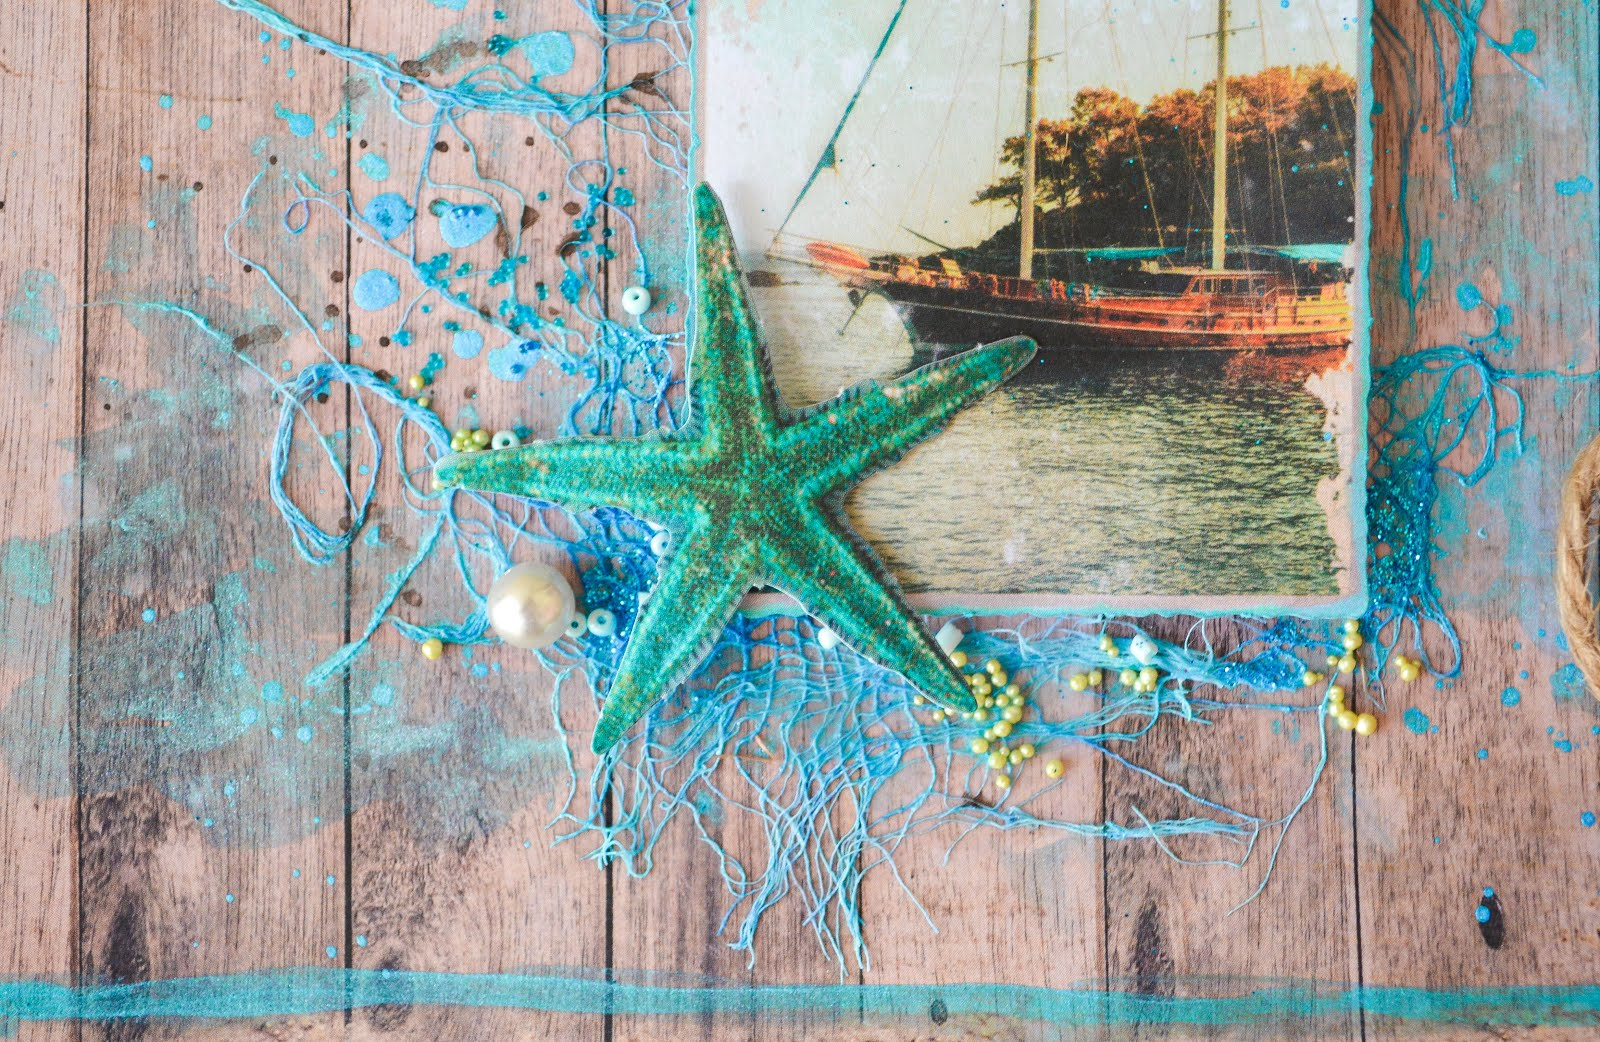 Nautical boat and seashells scrapbook layout page in turquoise blue on wood grain background with mixed media elements, cheesecloth, prills microbeads, jute rope twine, seed beads, and pearls